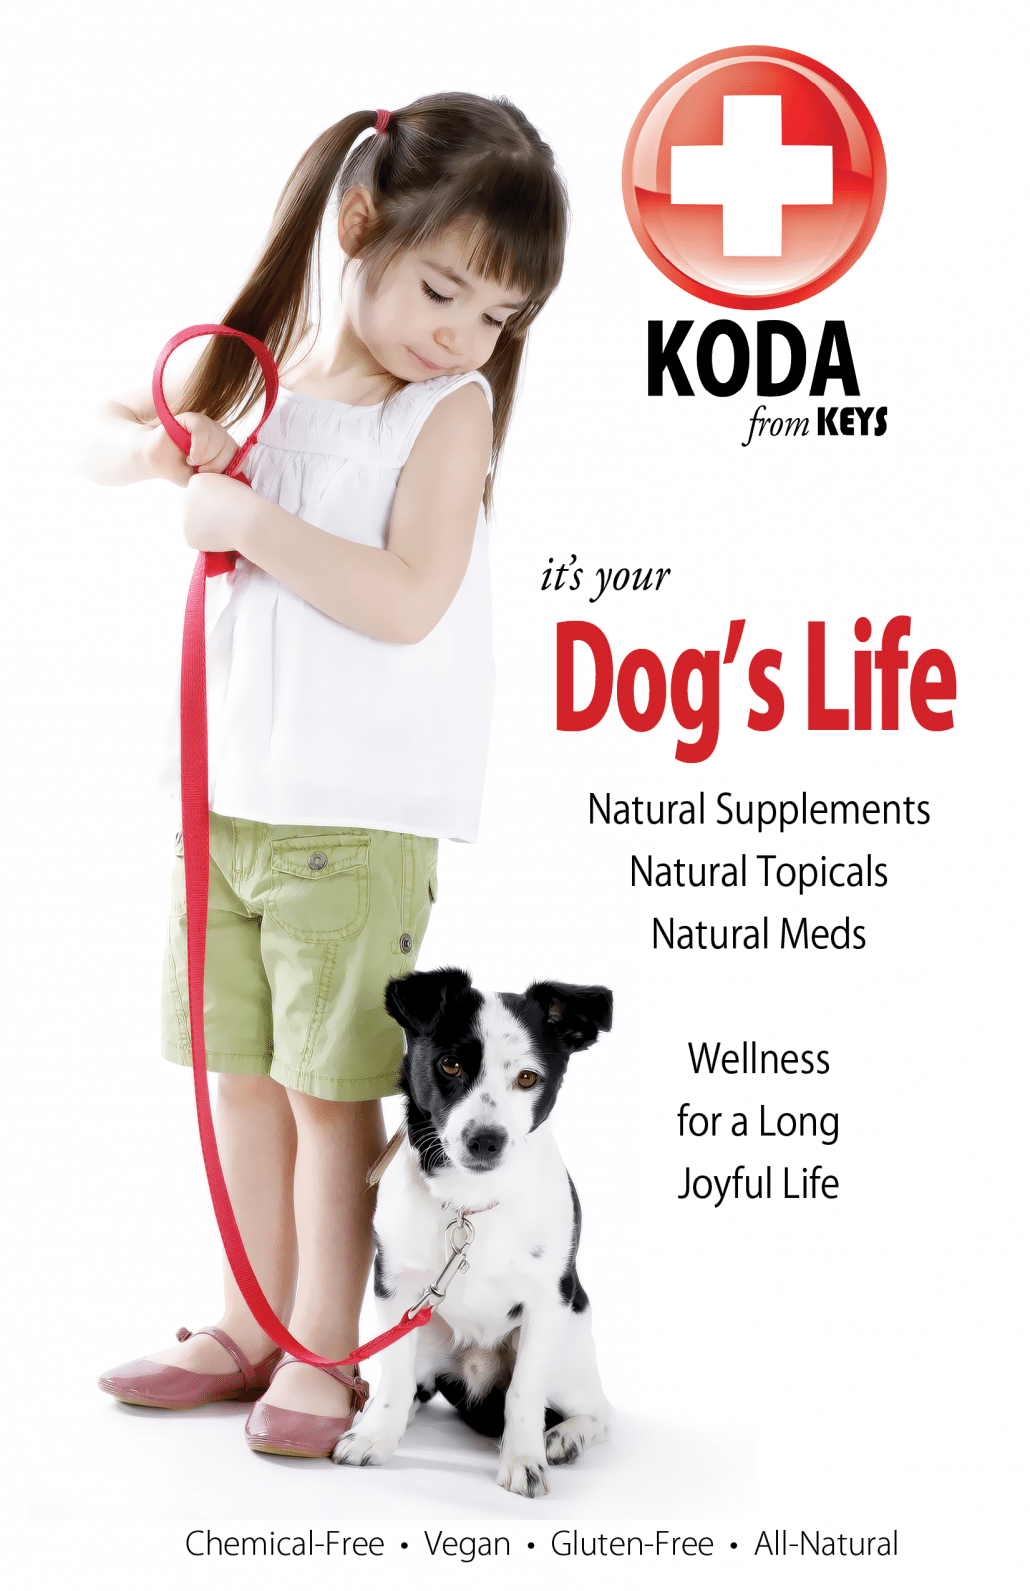 KODA-Brochure_final.png